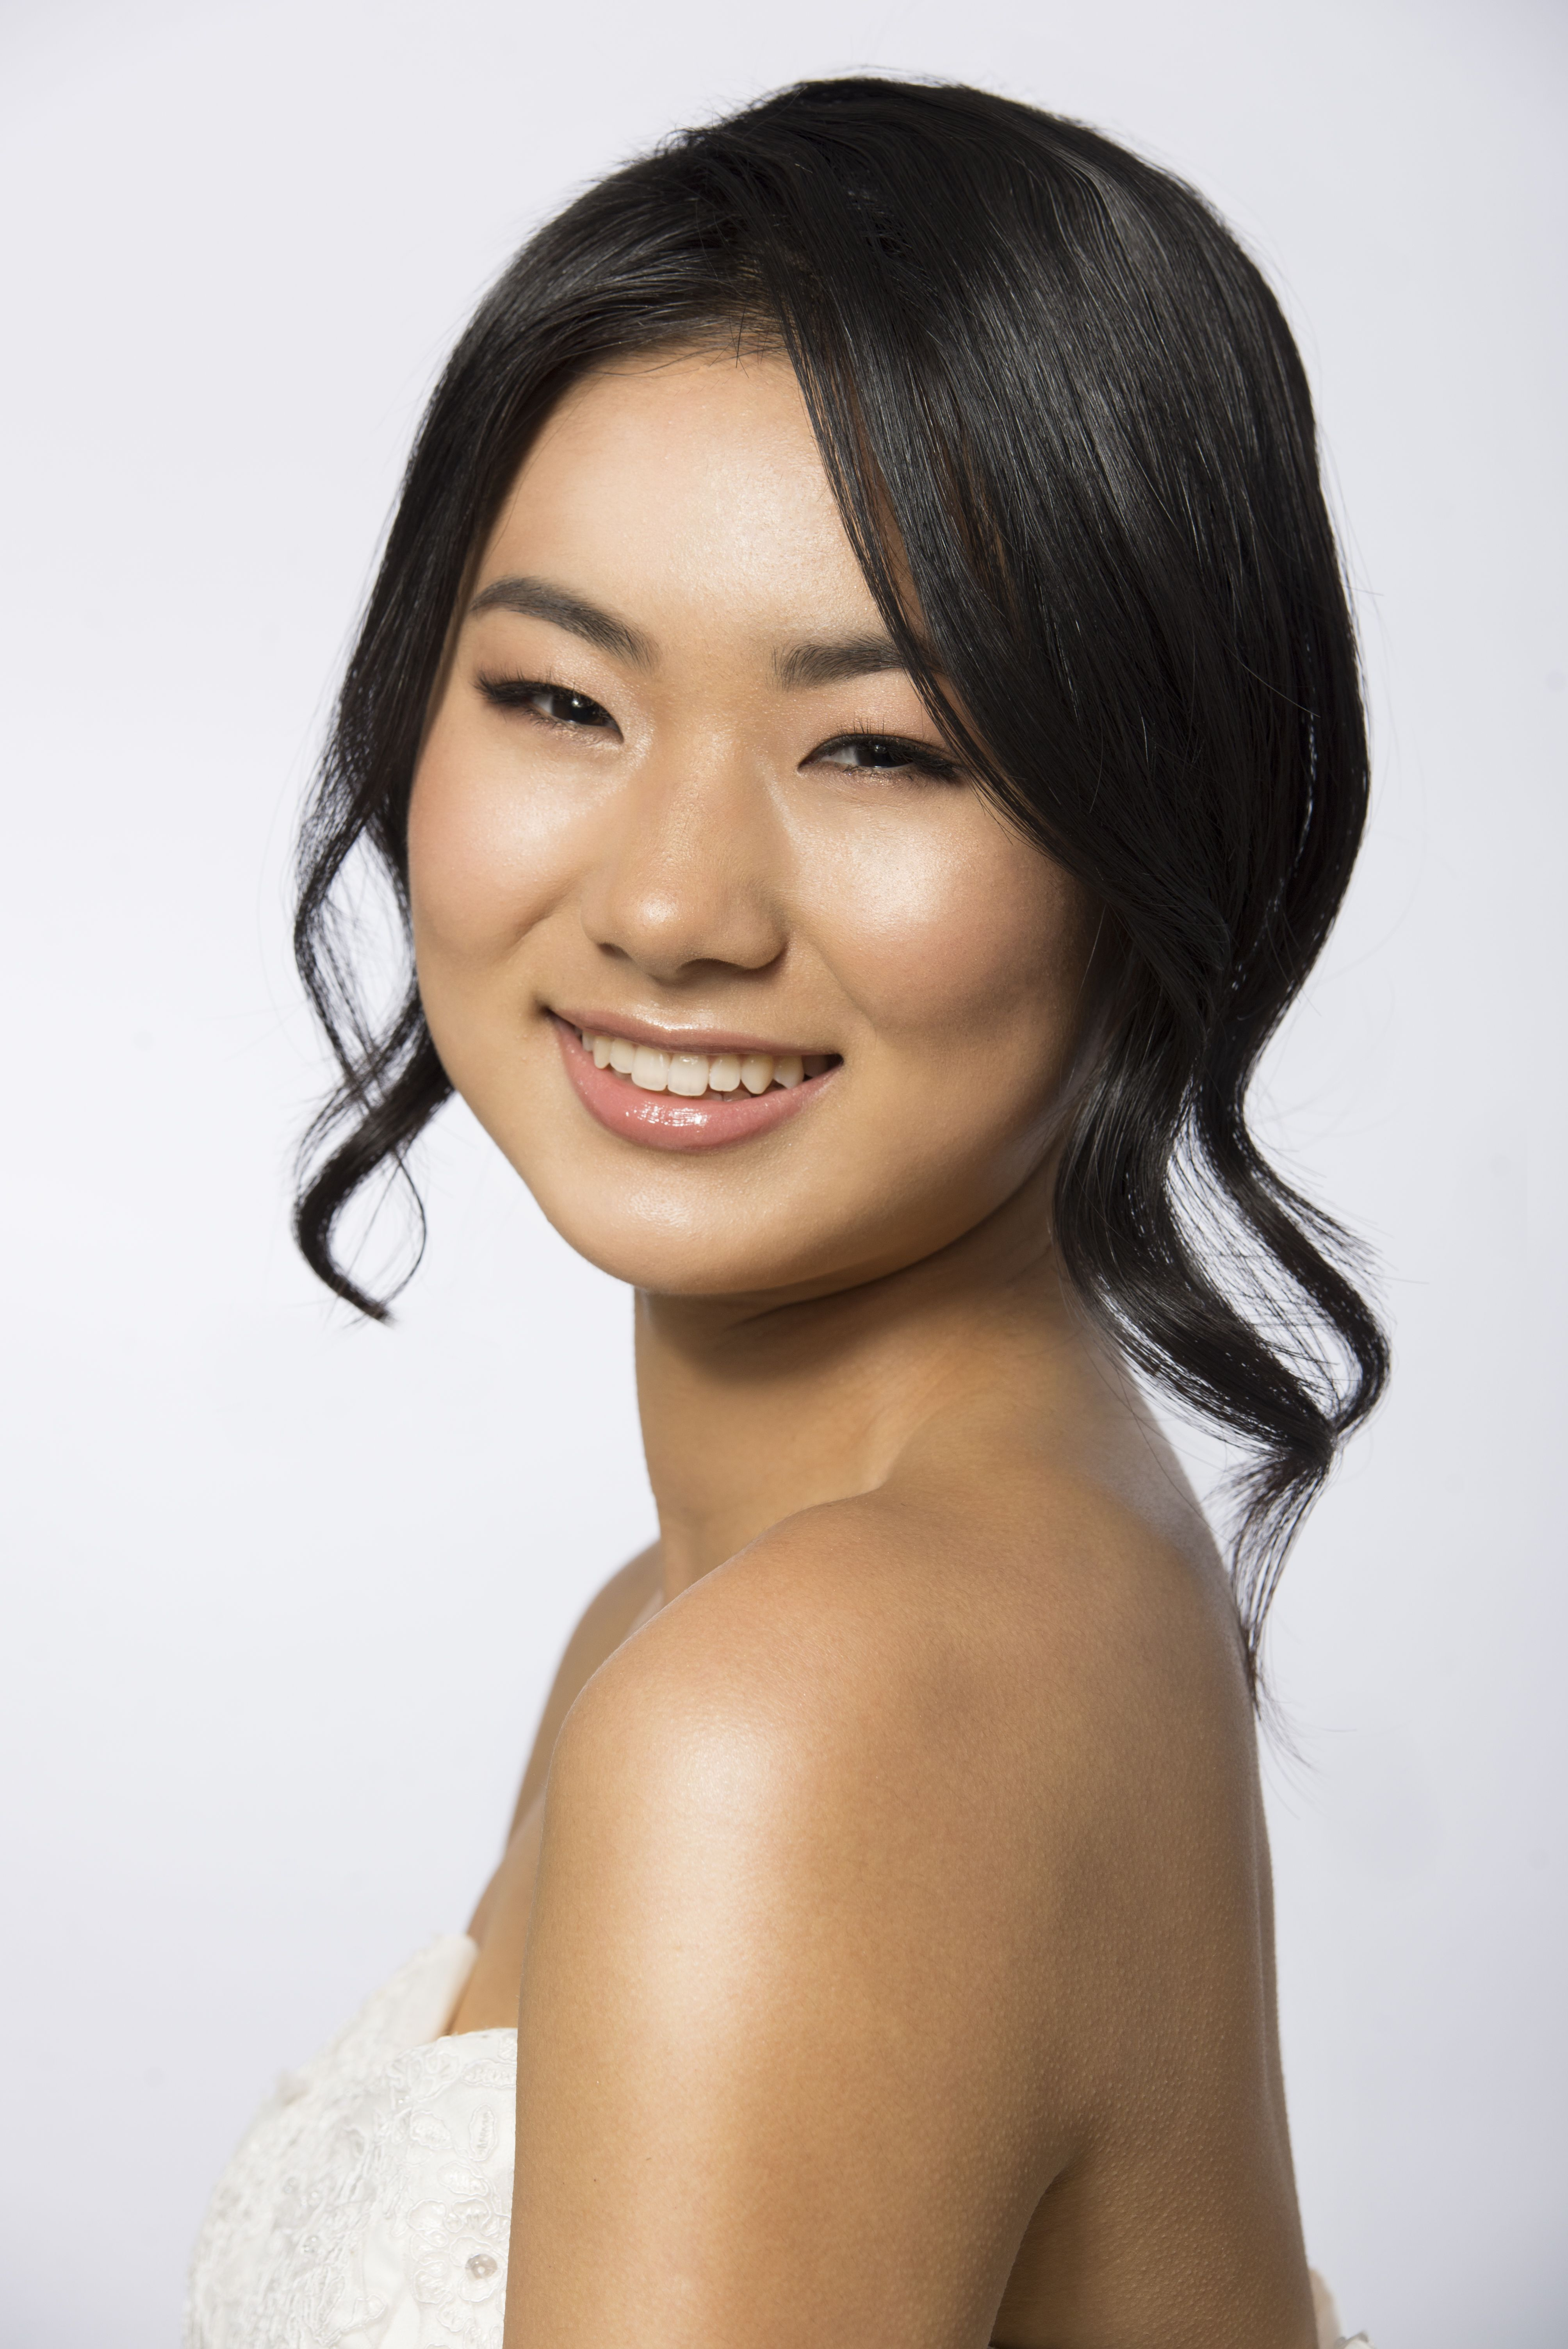 natural makeup for asian hair and makeup by Zoe Zhu www